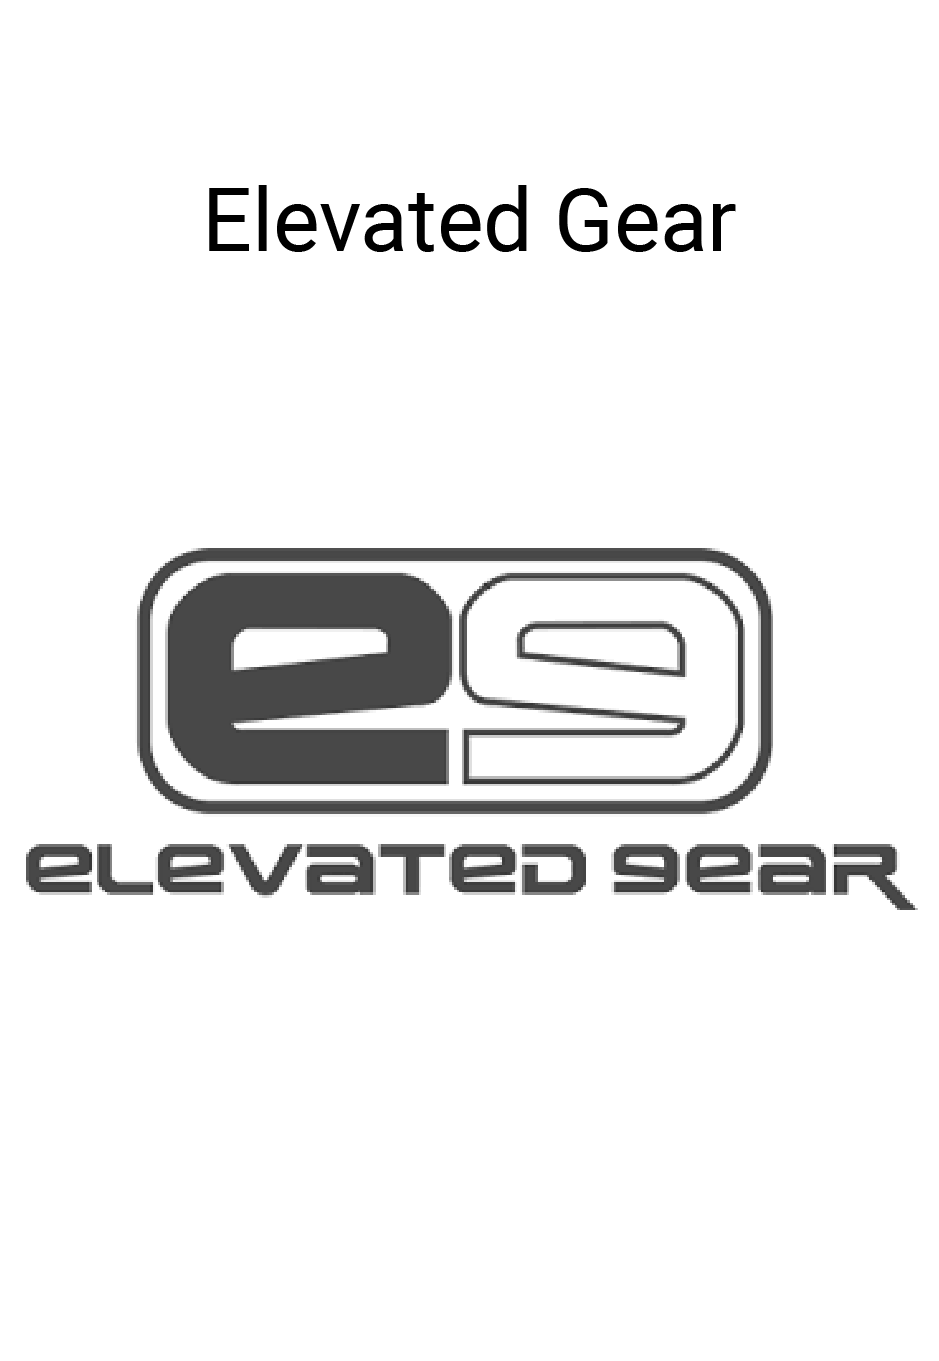 Elevated Gear